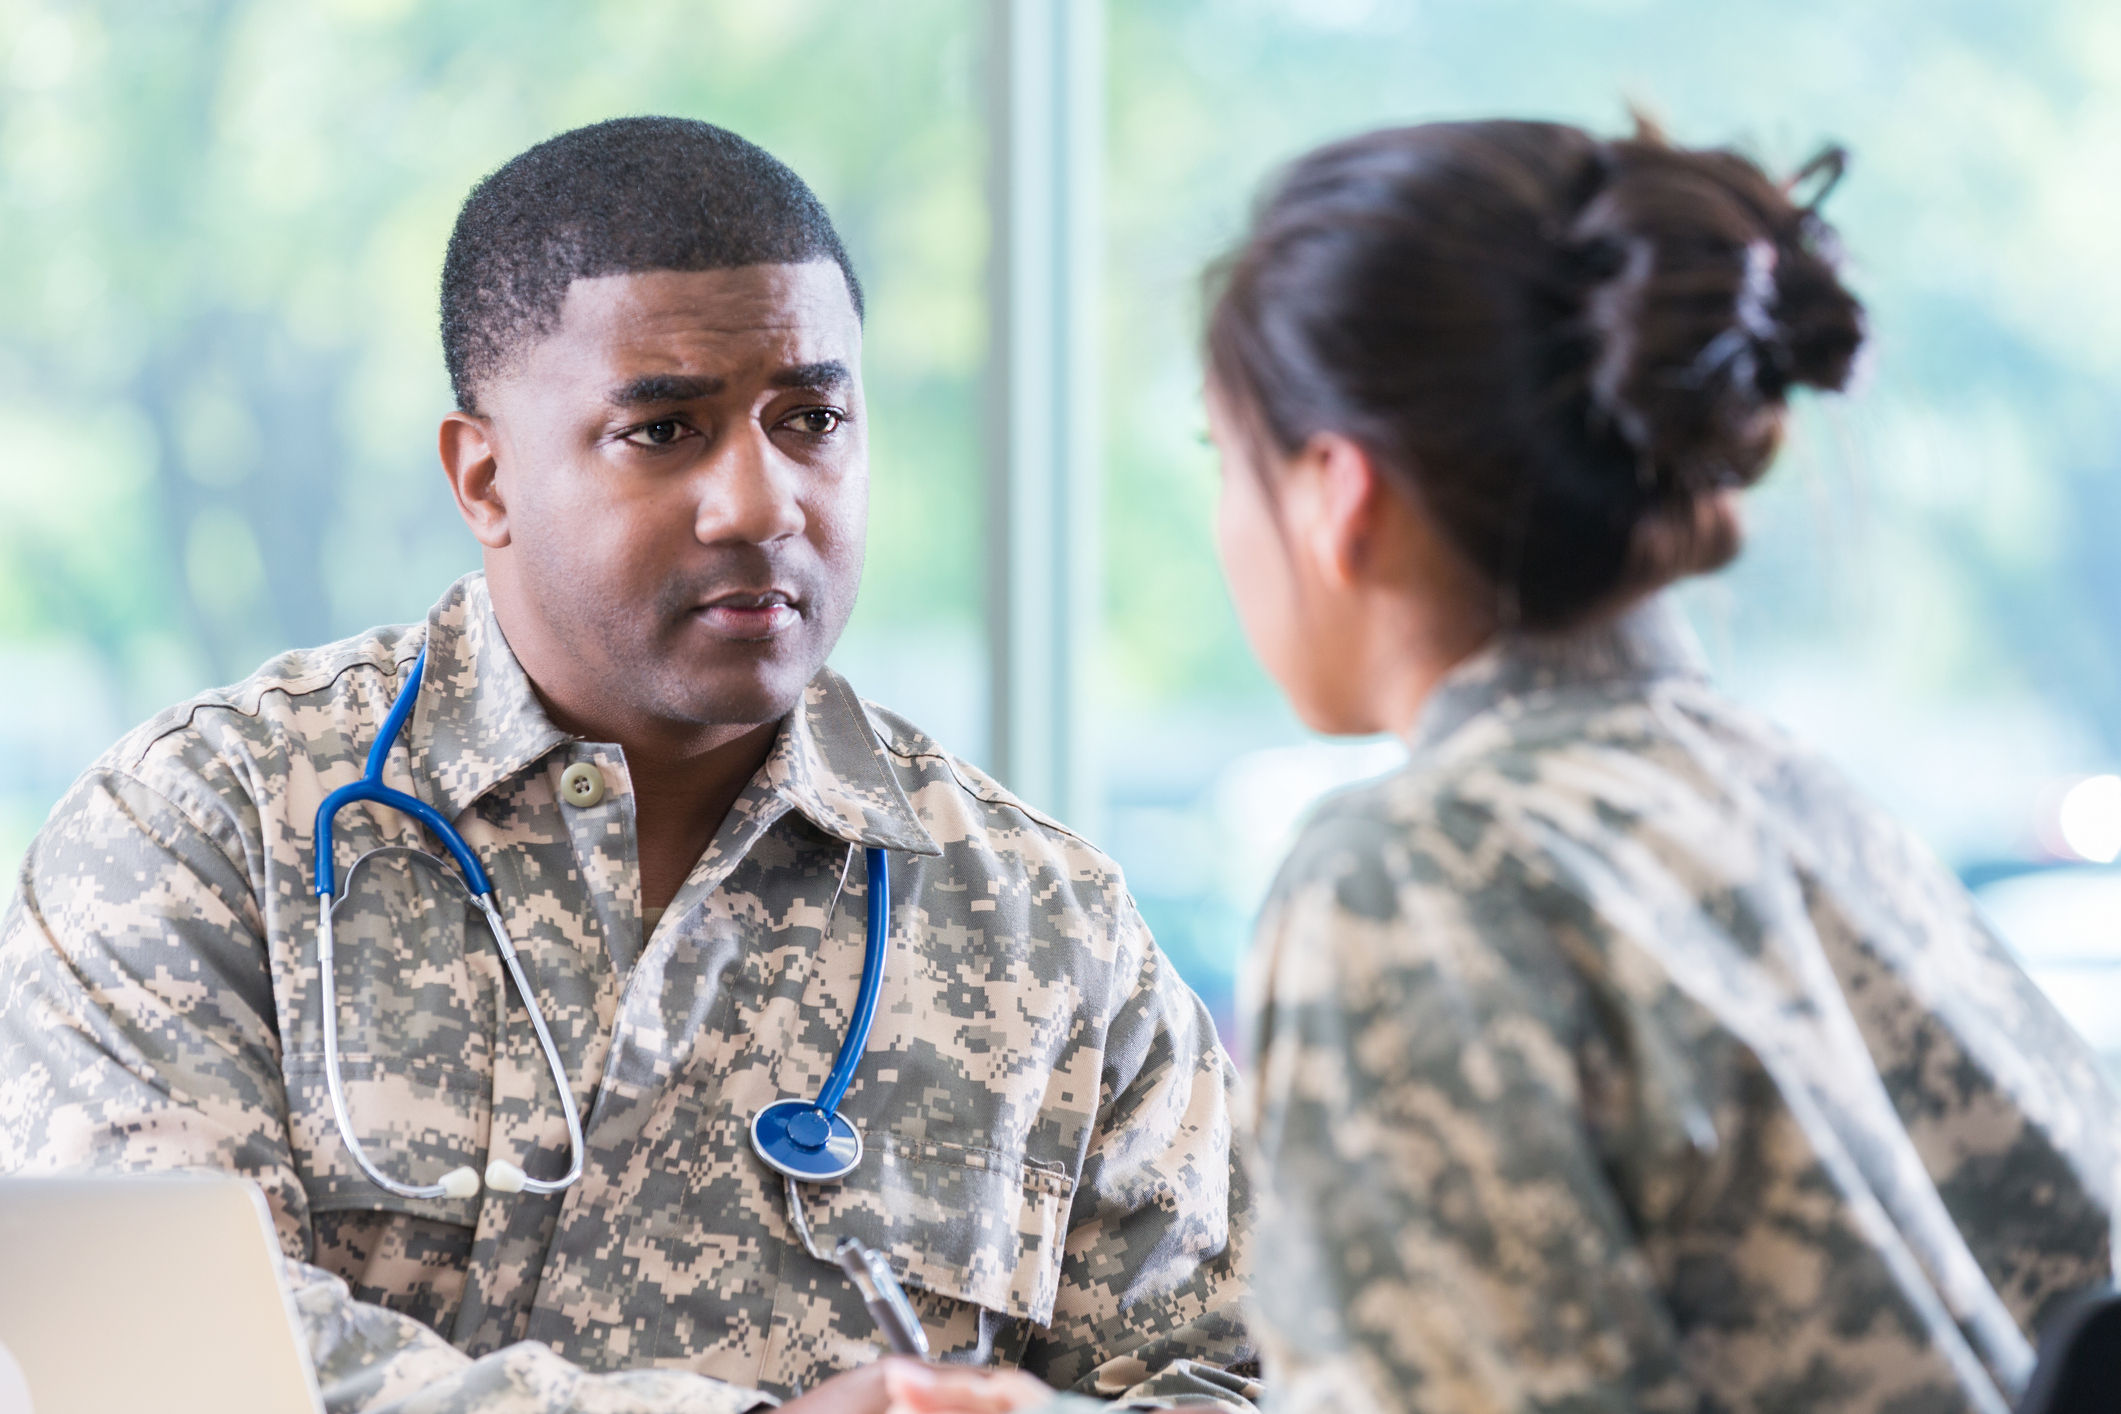 Veteran meeting doctor after exposure to PFAS chemicals